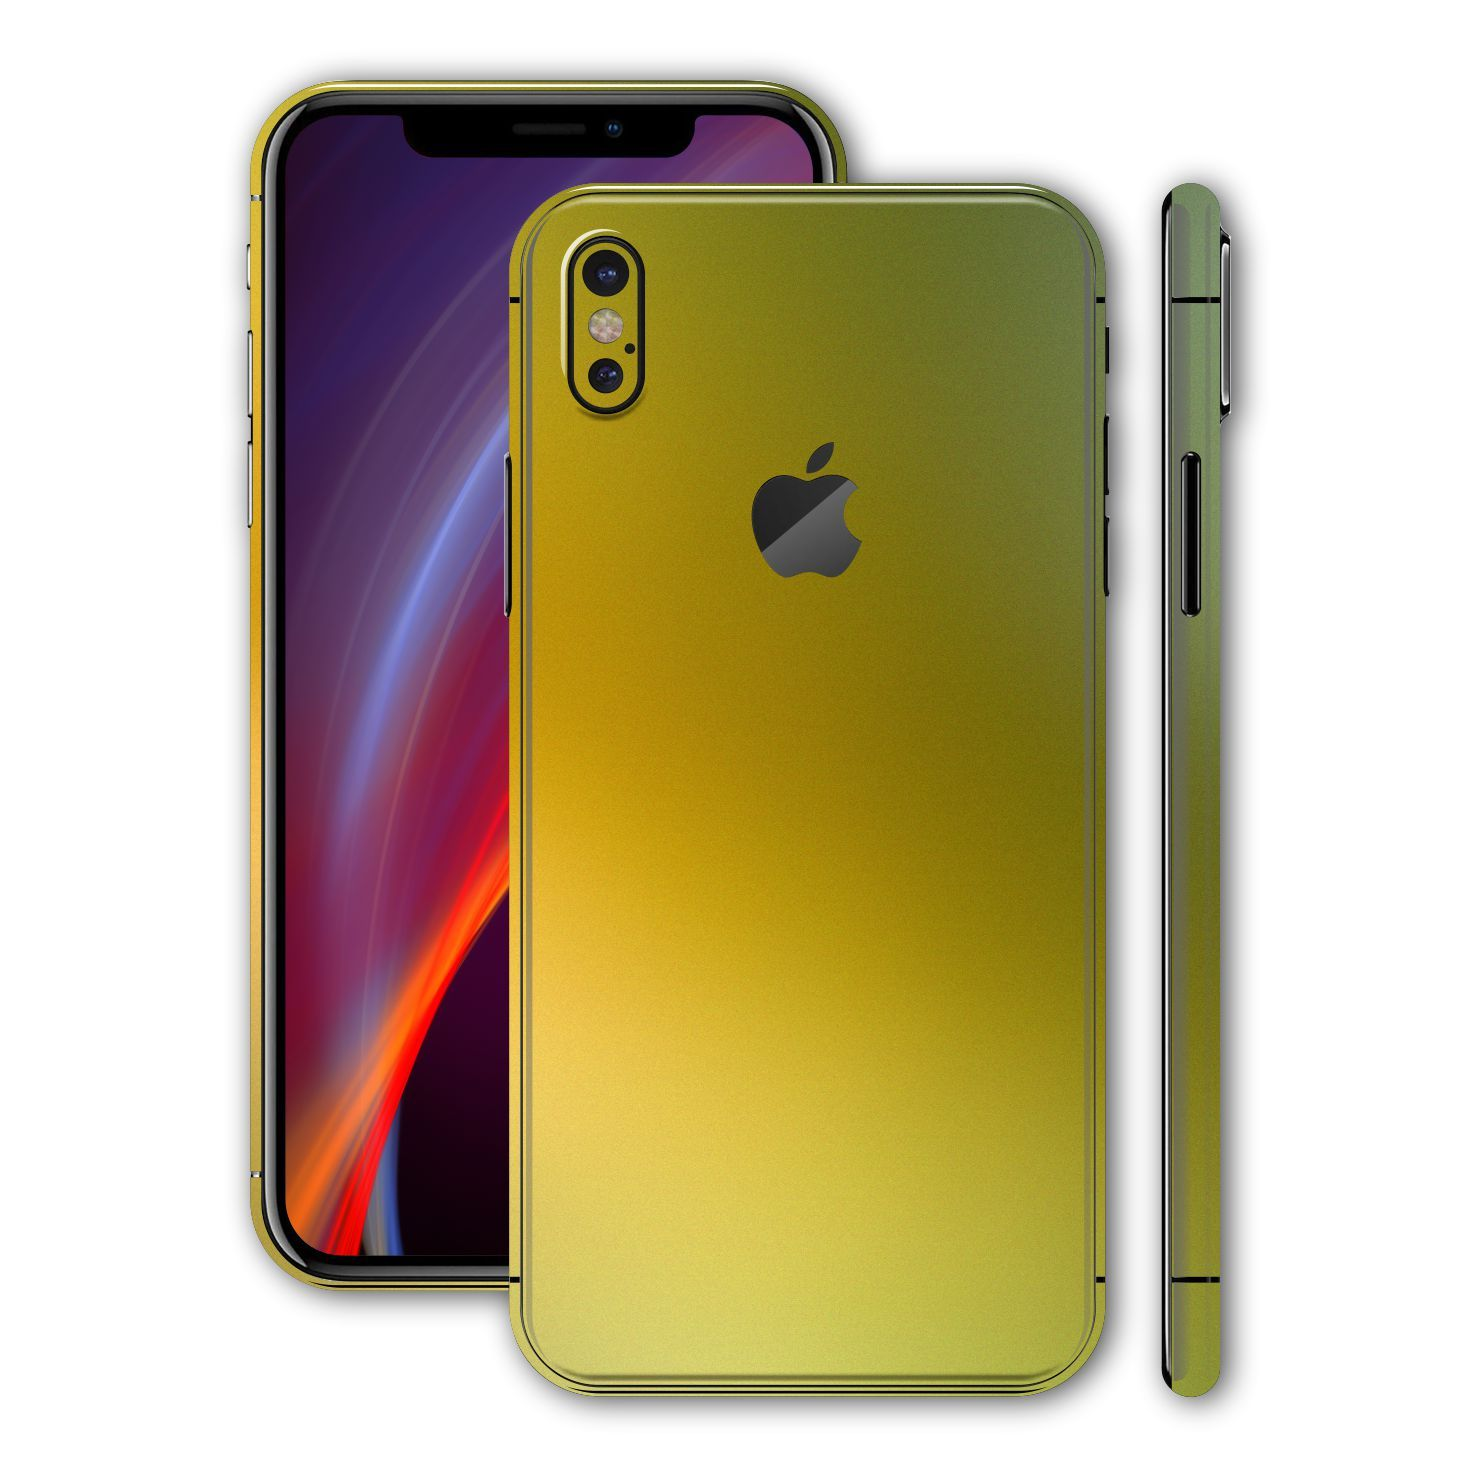 iPhone X Custom Design Matt Black Skin Wrap Decal Protector Cover | EasySkinz